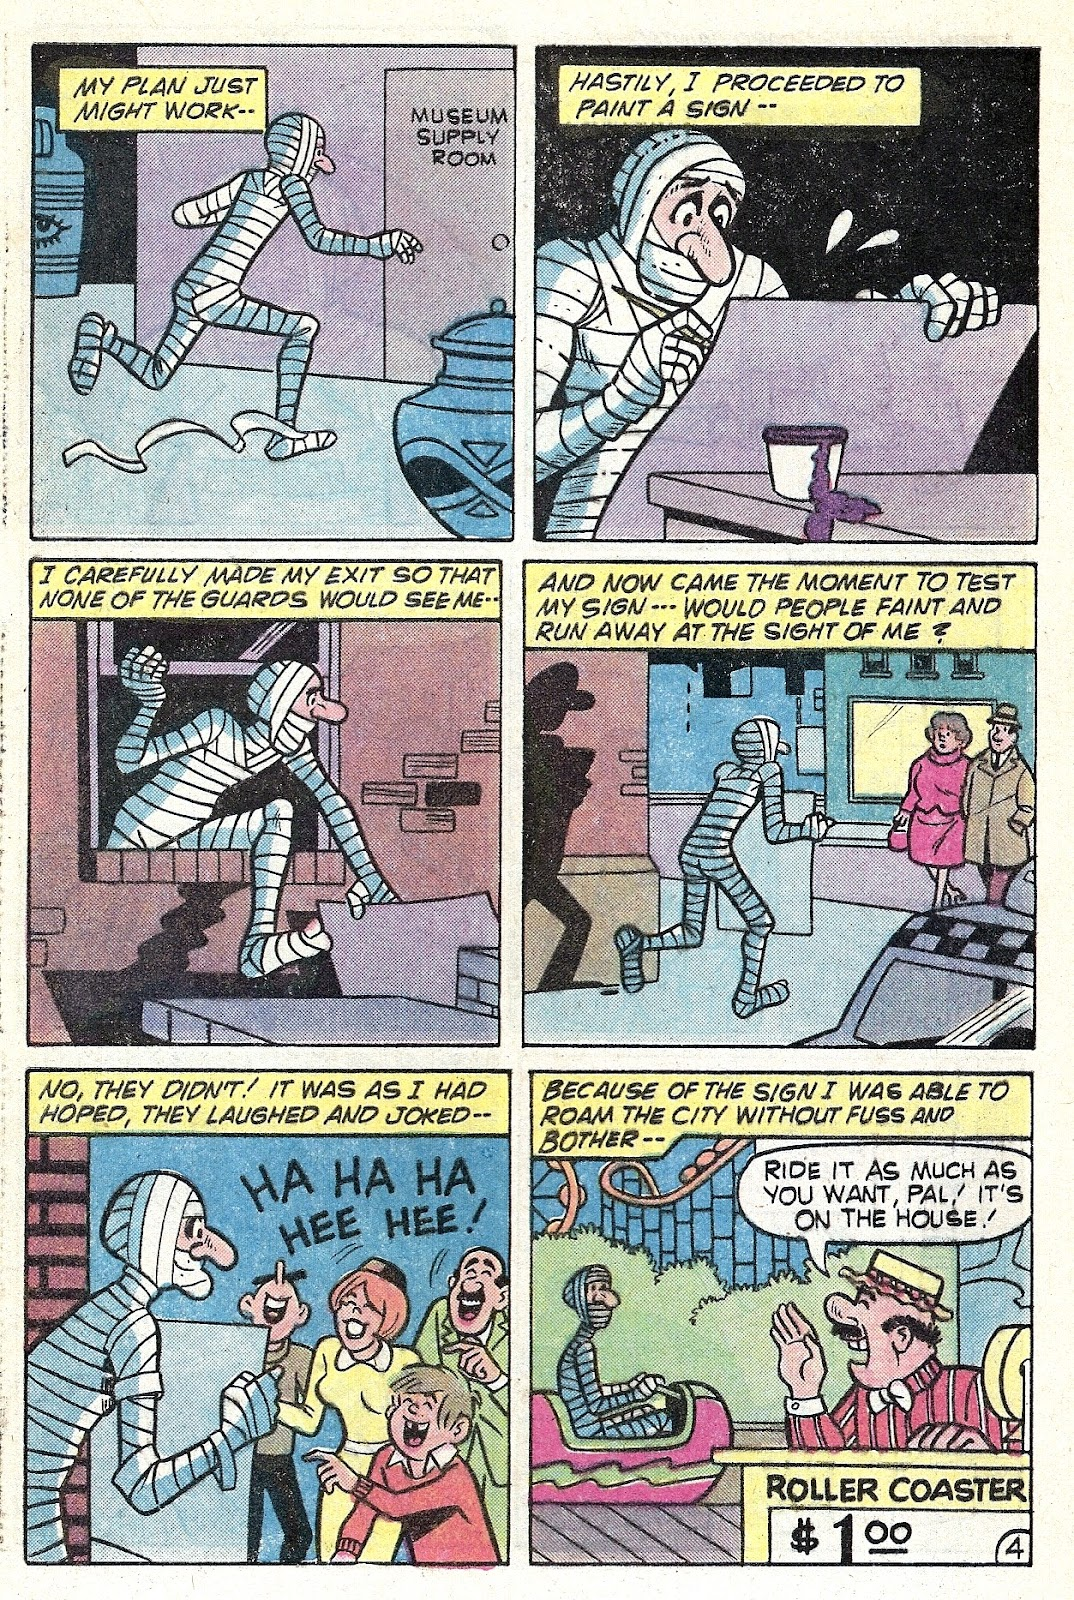 Read online Madhouse Comics comic -  Issue #116 - 32